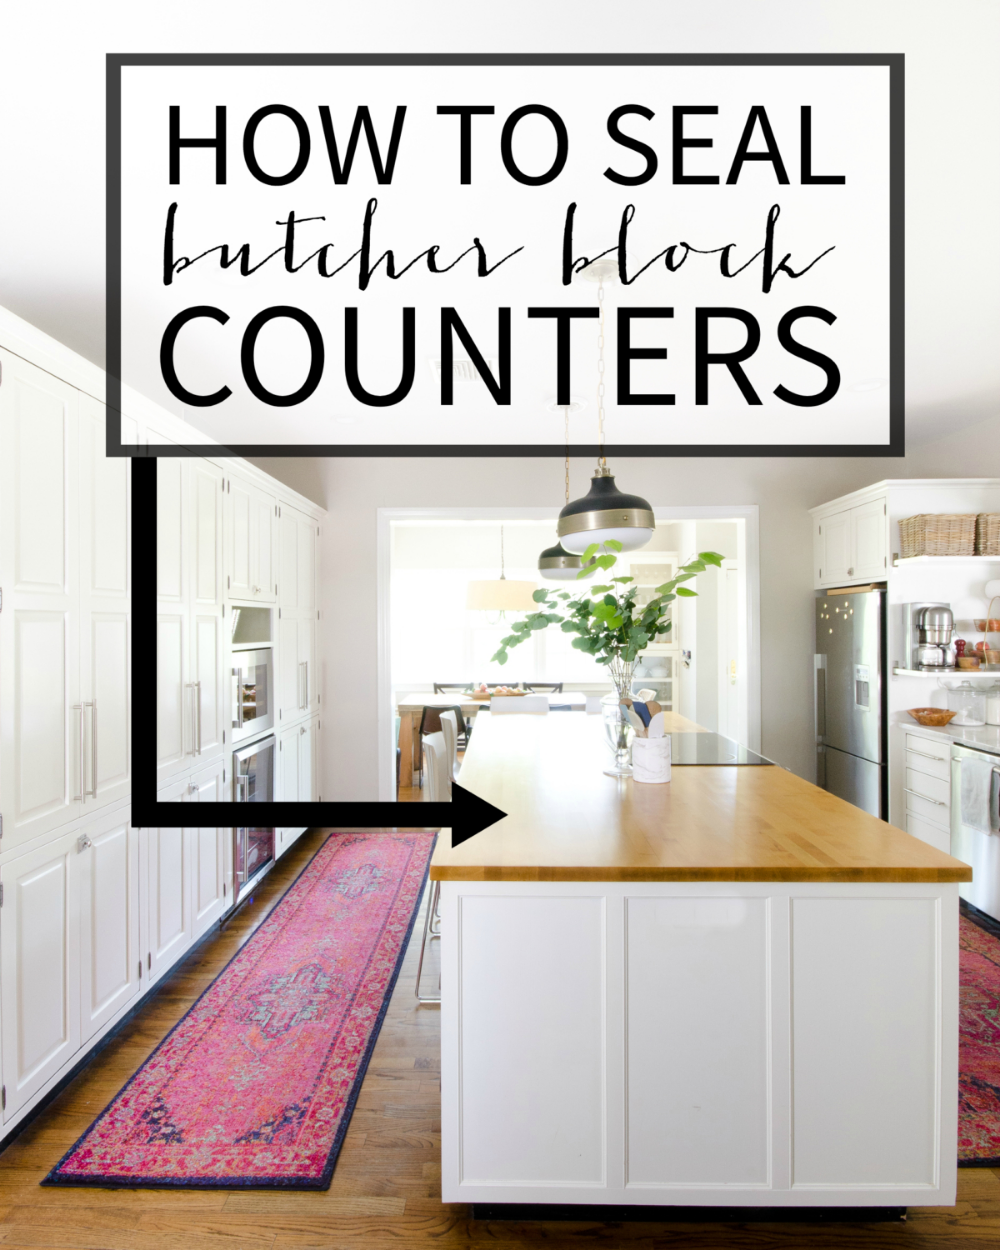 How to Seal Butcher Block Counters Home repairs, Butcher